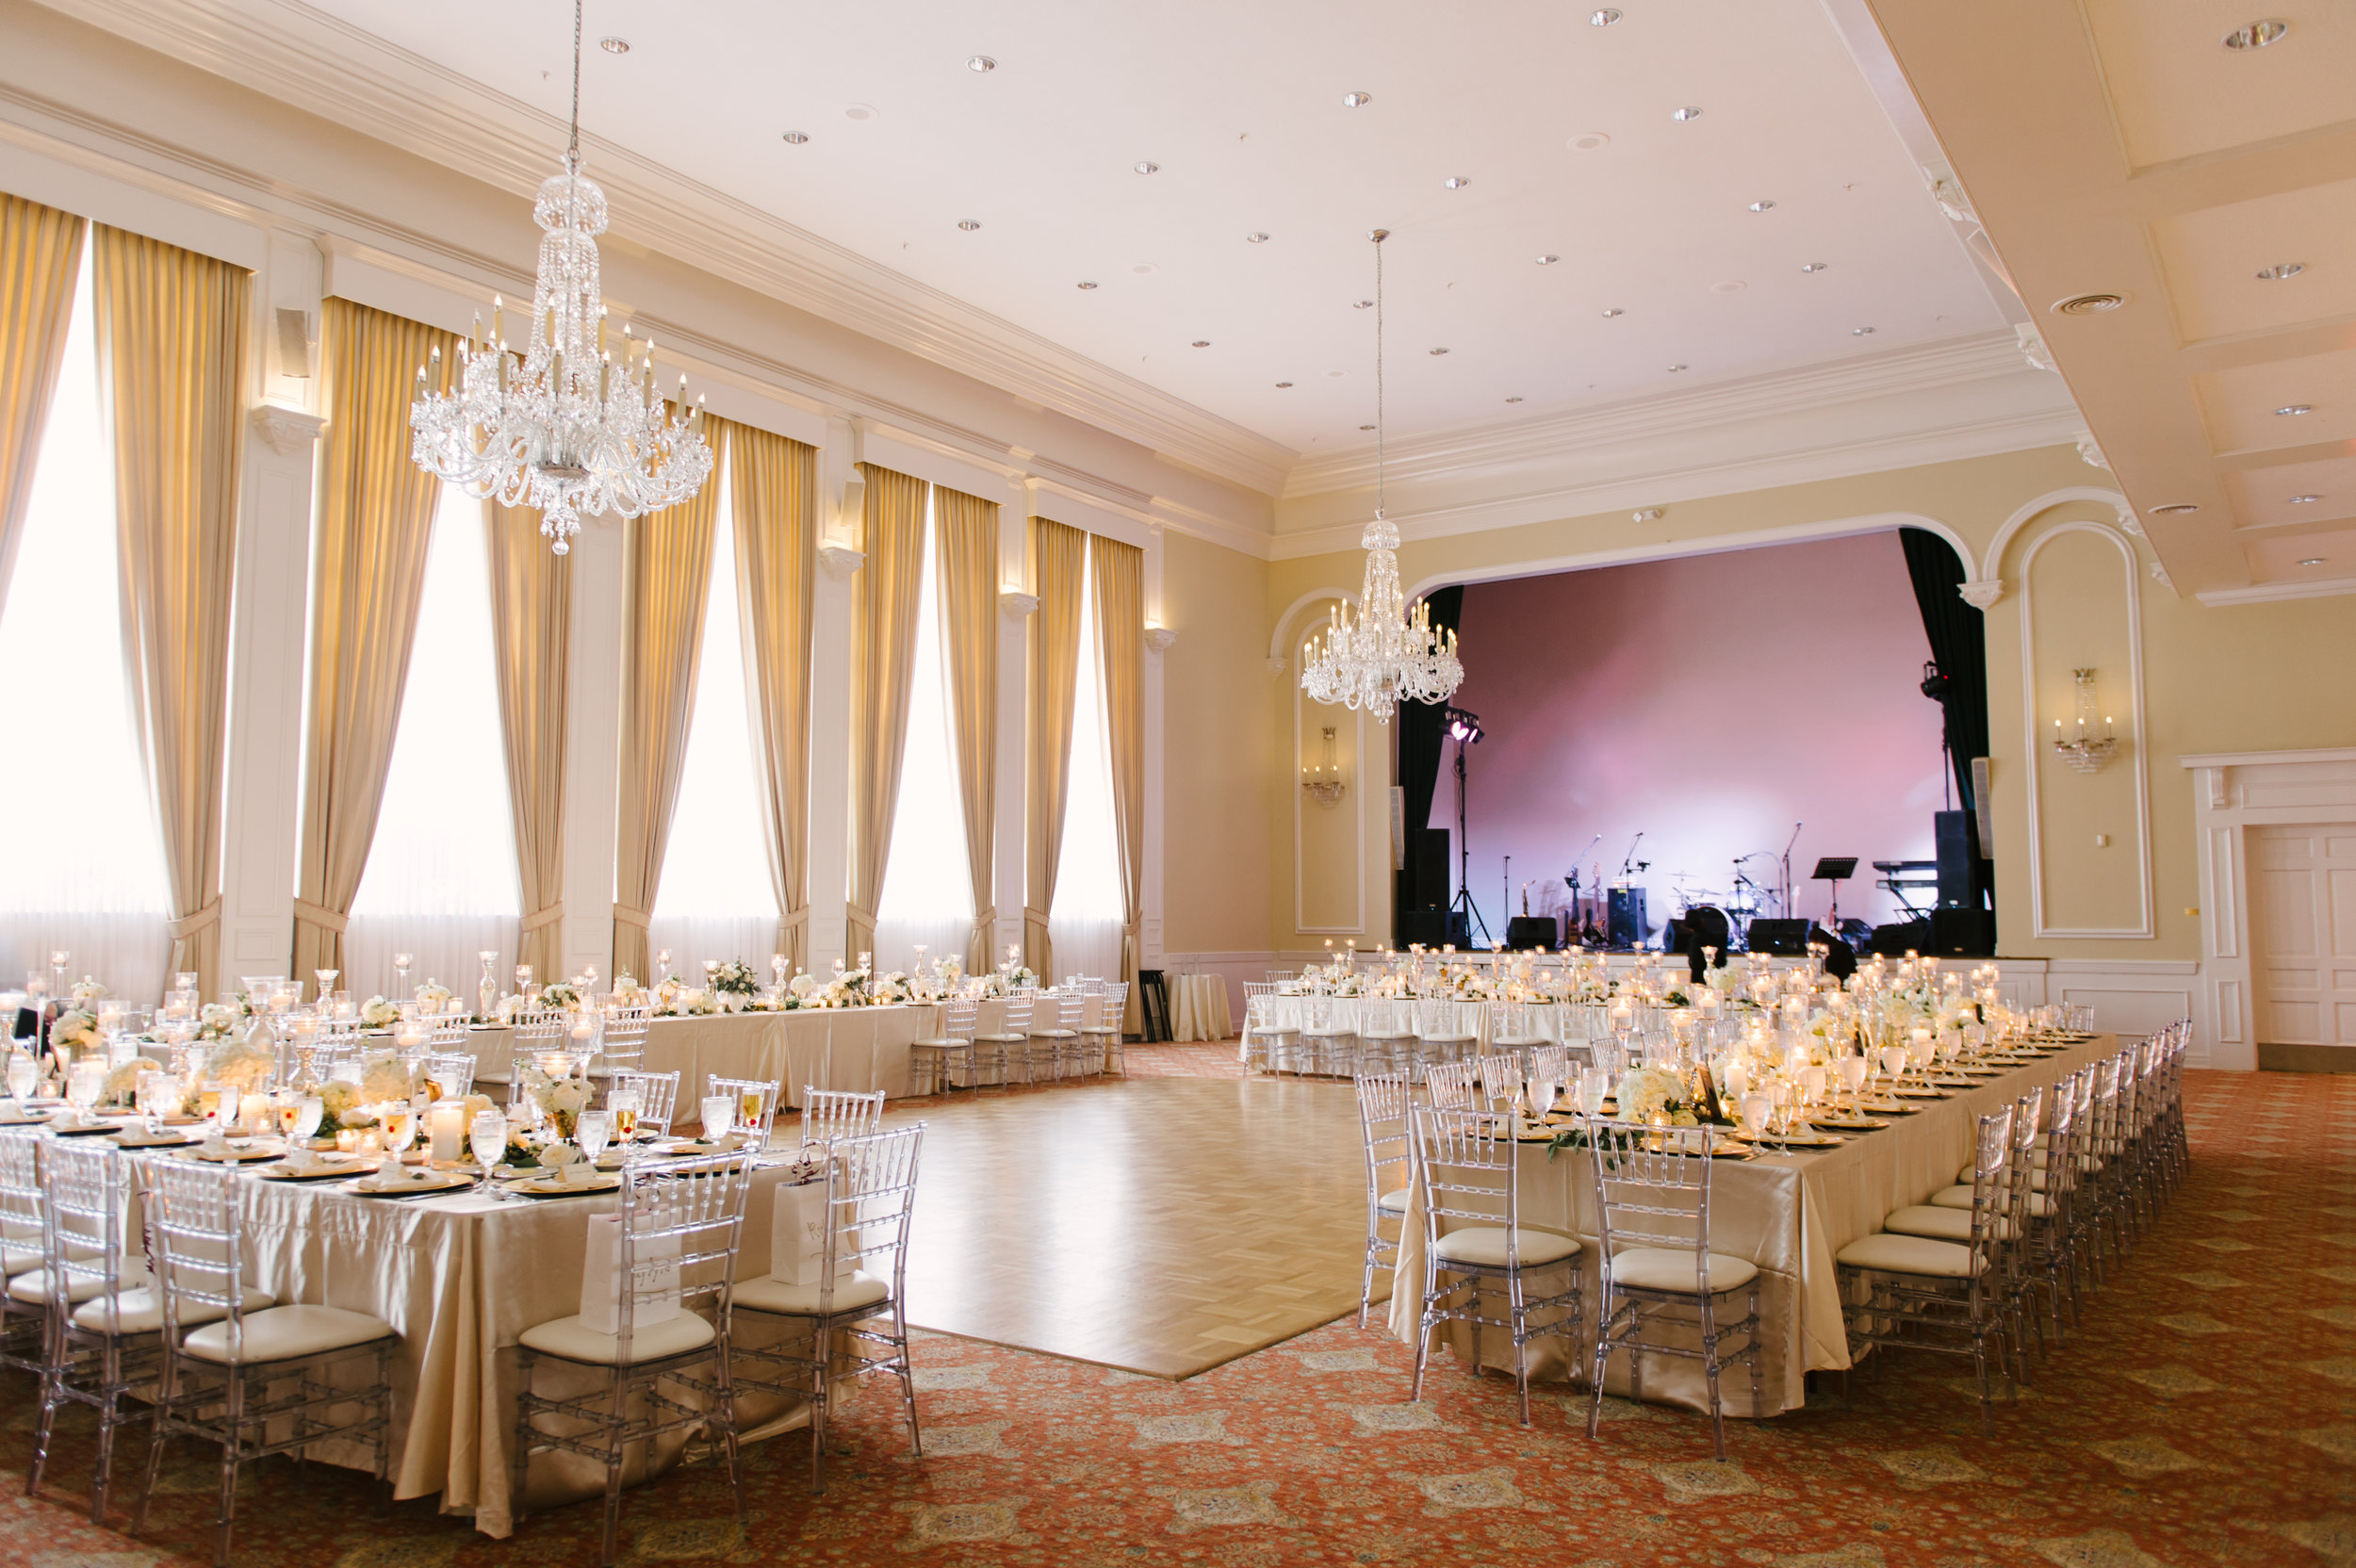 Guests enjoyed a formal plated meal and champagne toast at long feasting tables under crystal chandeliers.